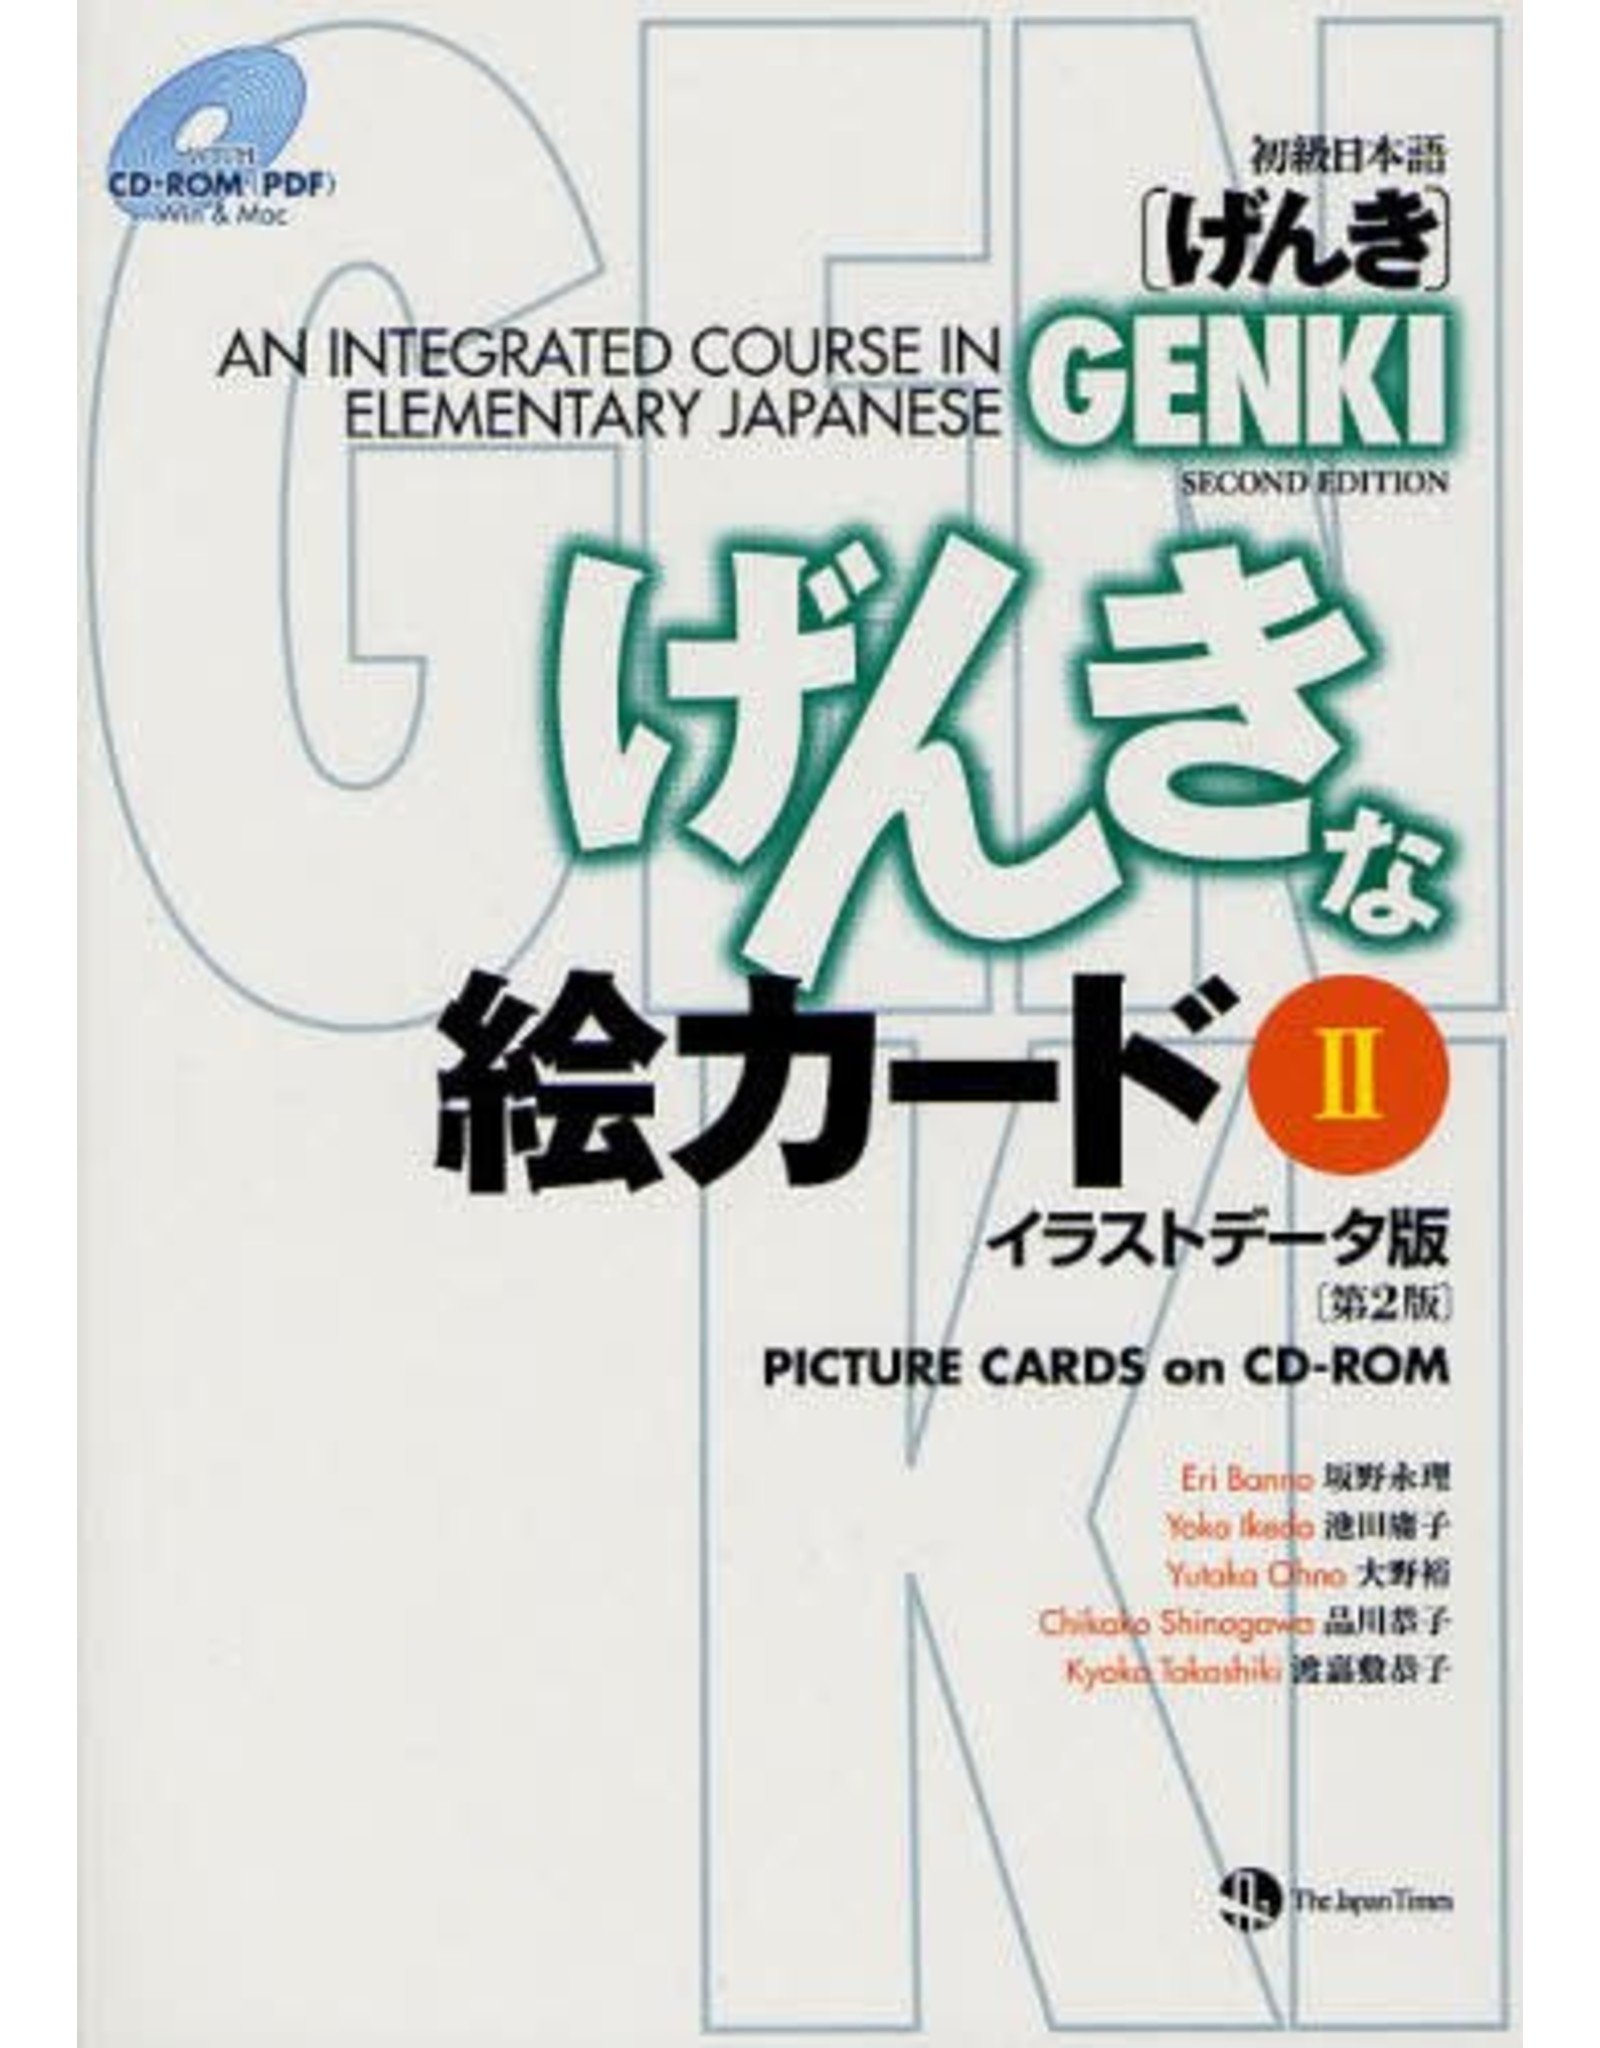 JAPAN TIMES GENKI NA E CARD (2) / CD-ROM - GENKI PICTURE CARDS ON CD-ROM (2)